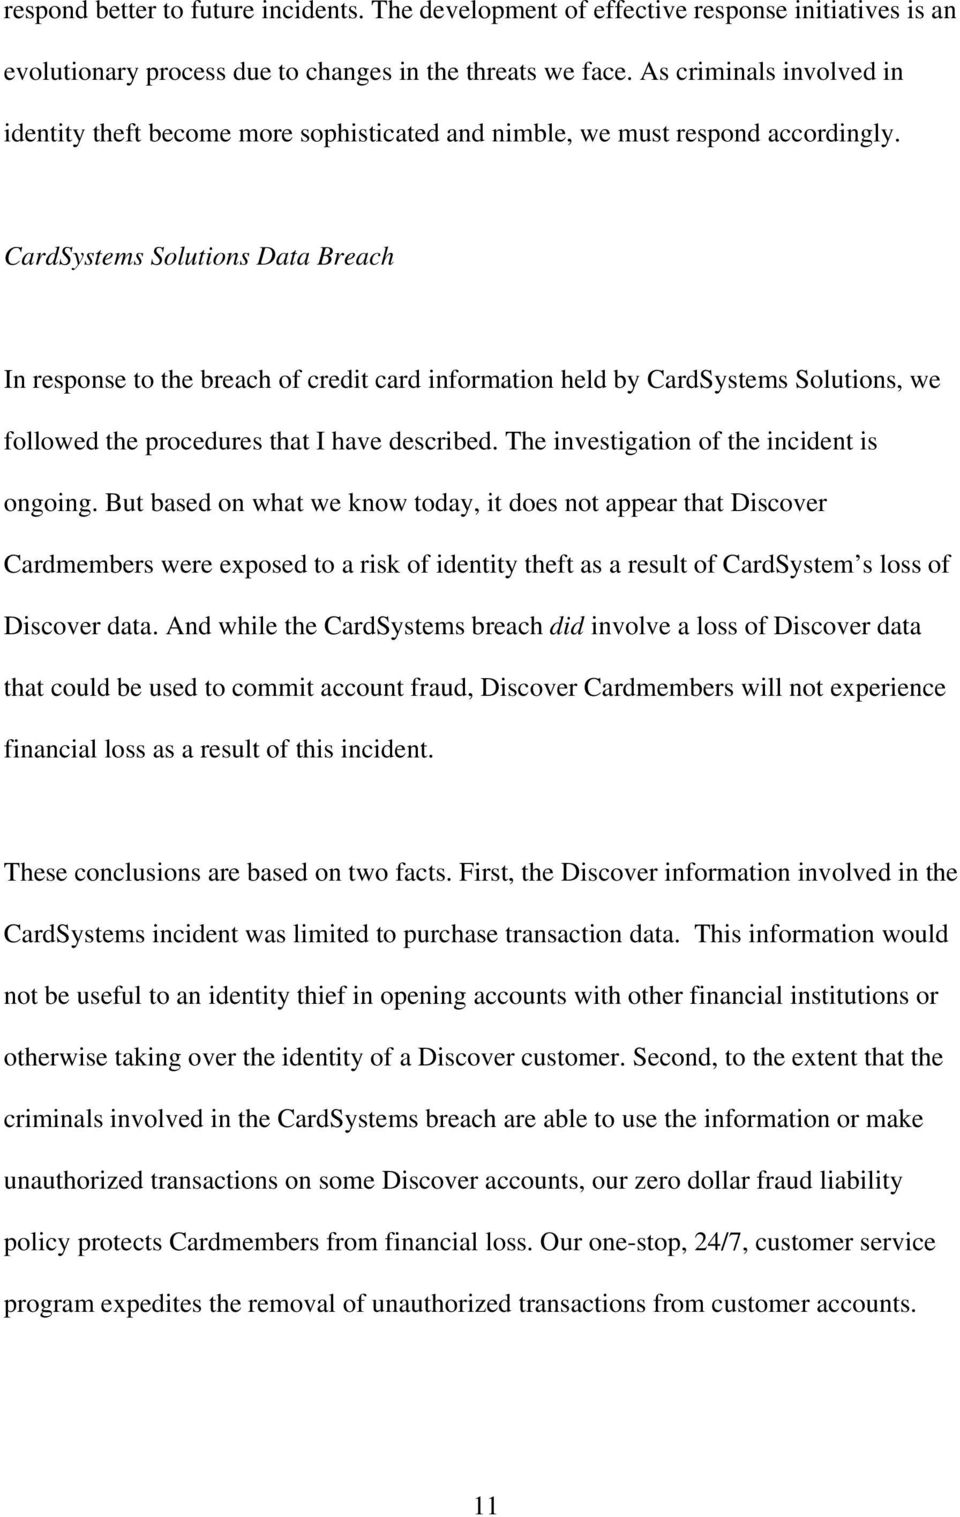 CardSystems Solutions Data Breach In response to the breach of credit card information held by CardSystems Solutions, we followed the procedures that I have described.